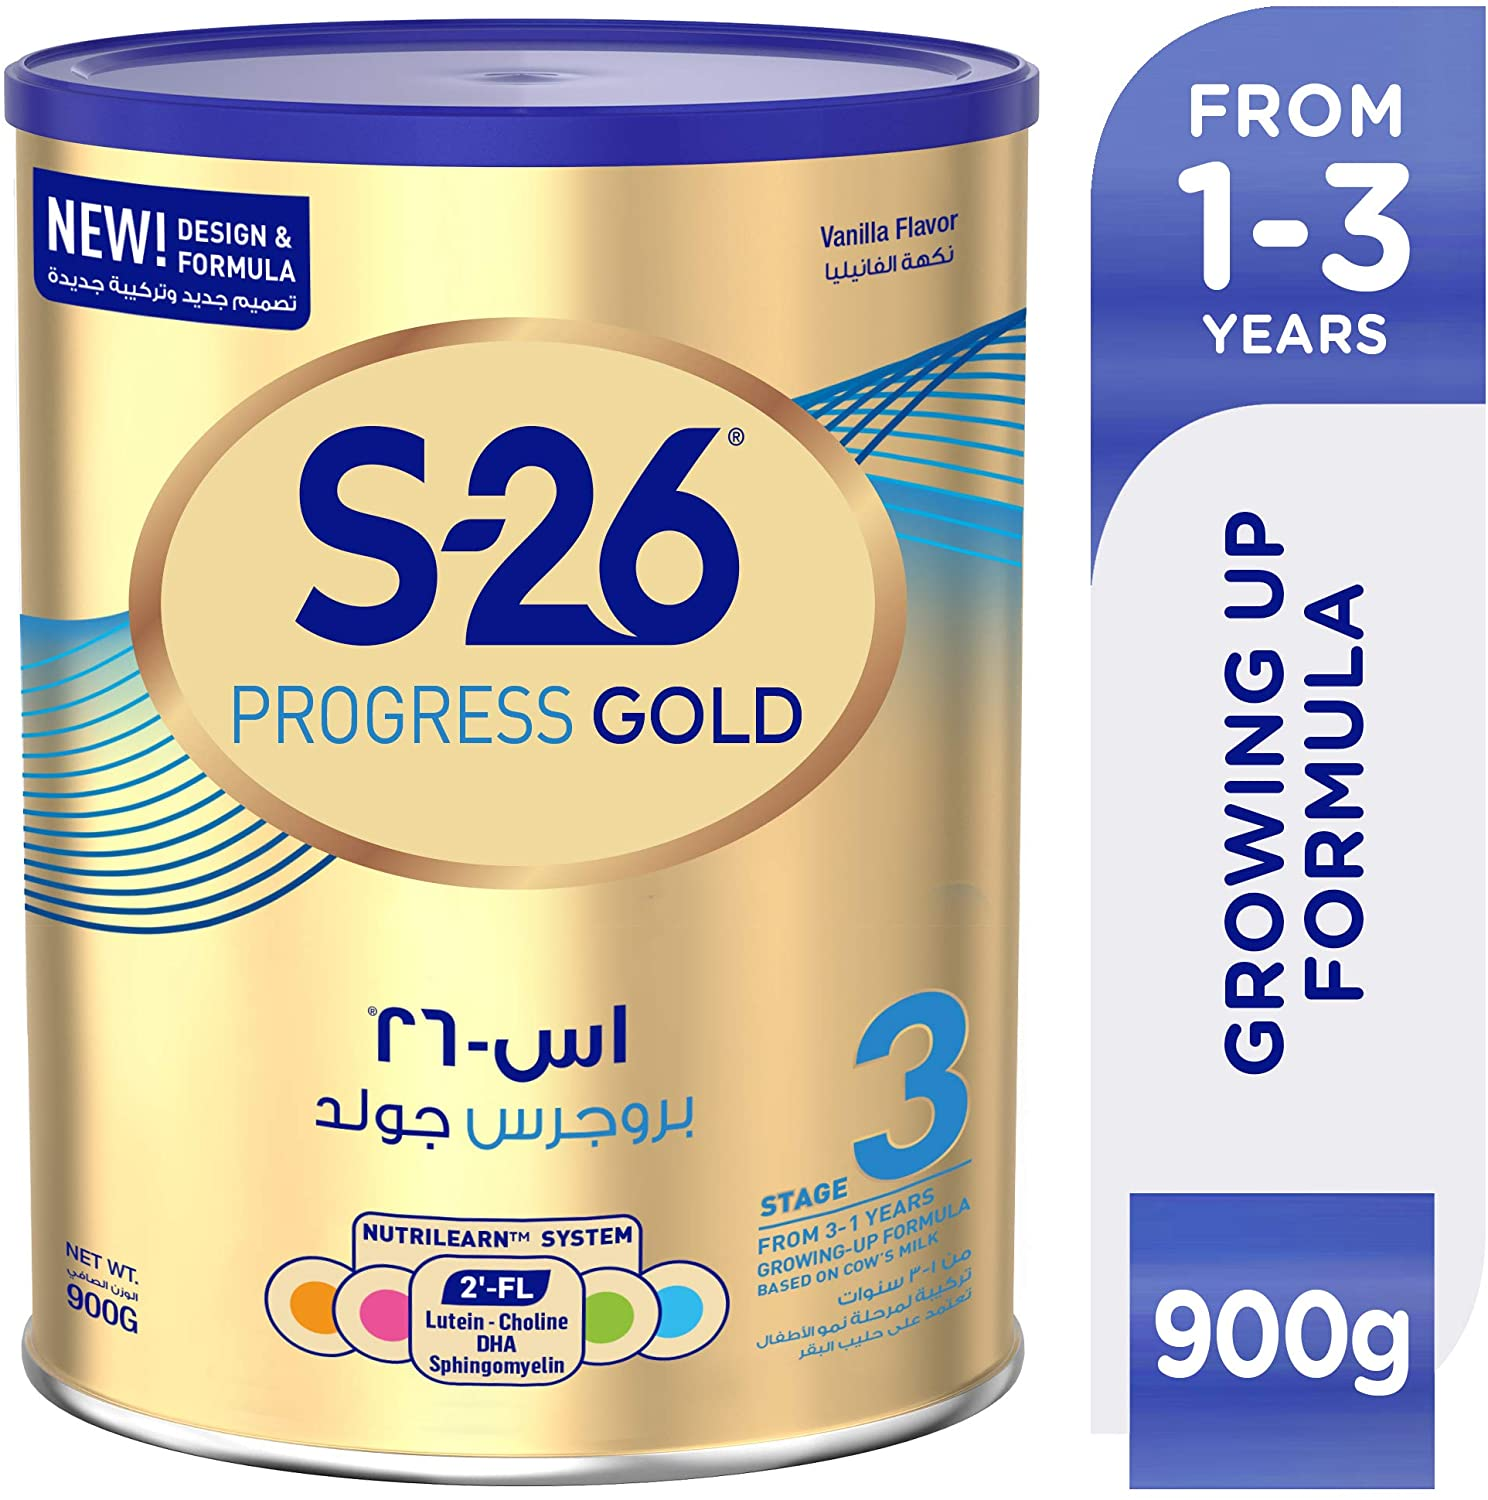 WYETH NUTRITION S26® PROGRESS GOLD Stage 3, 1-3 Years Premium Milk Powder for Toddlers Tin 900g with Biofactors System - Vanilla Flavor